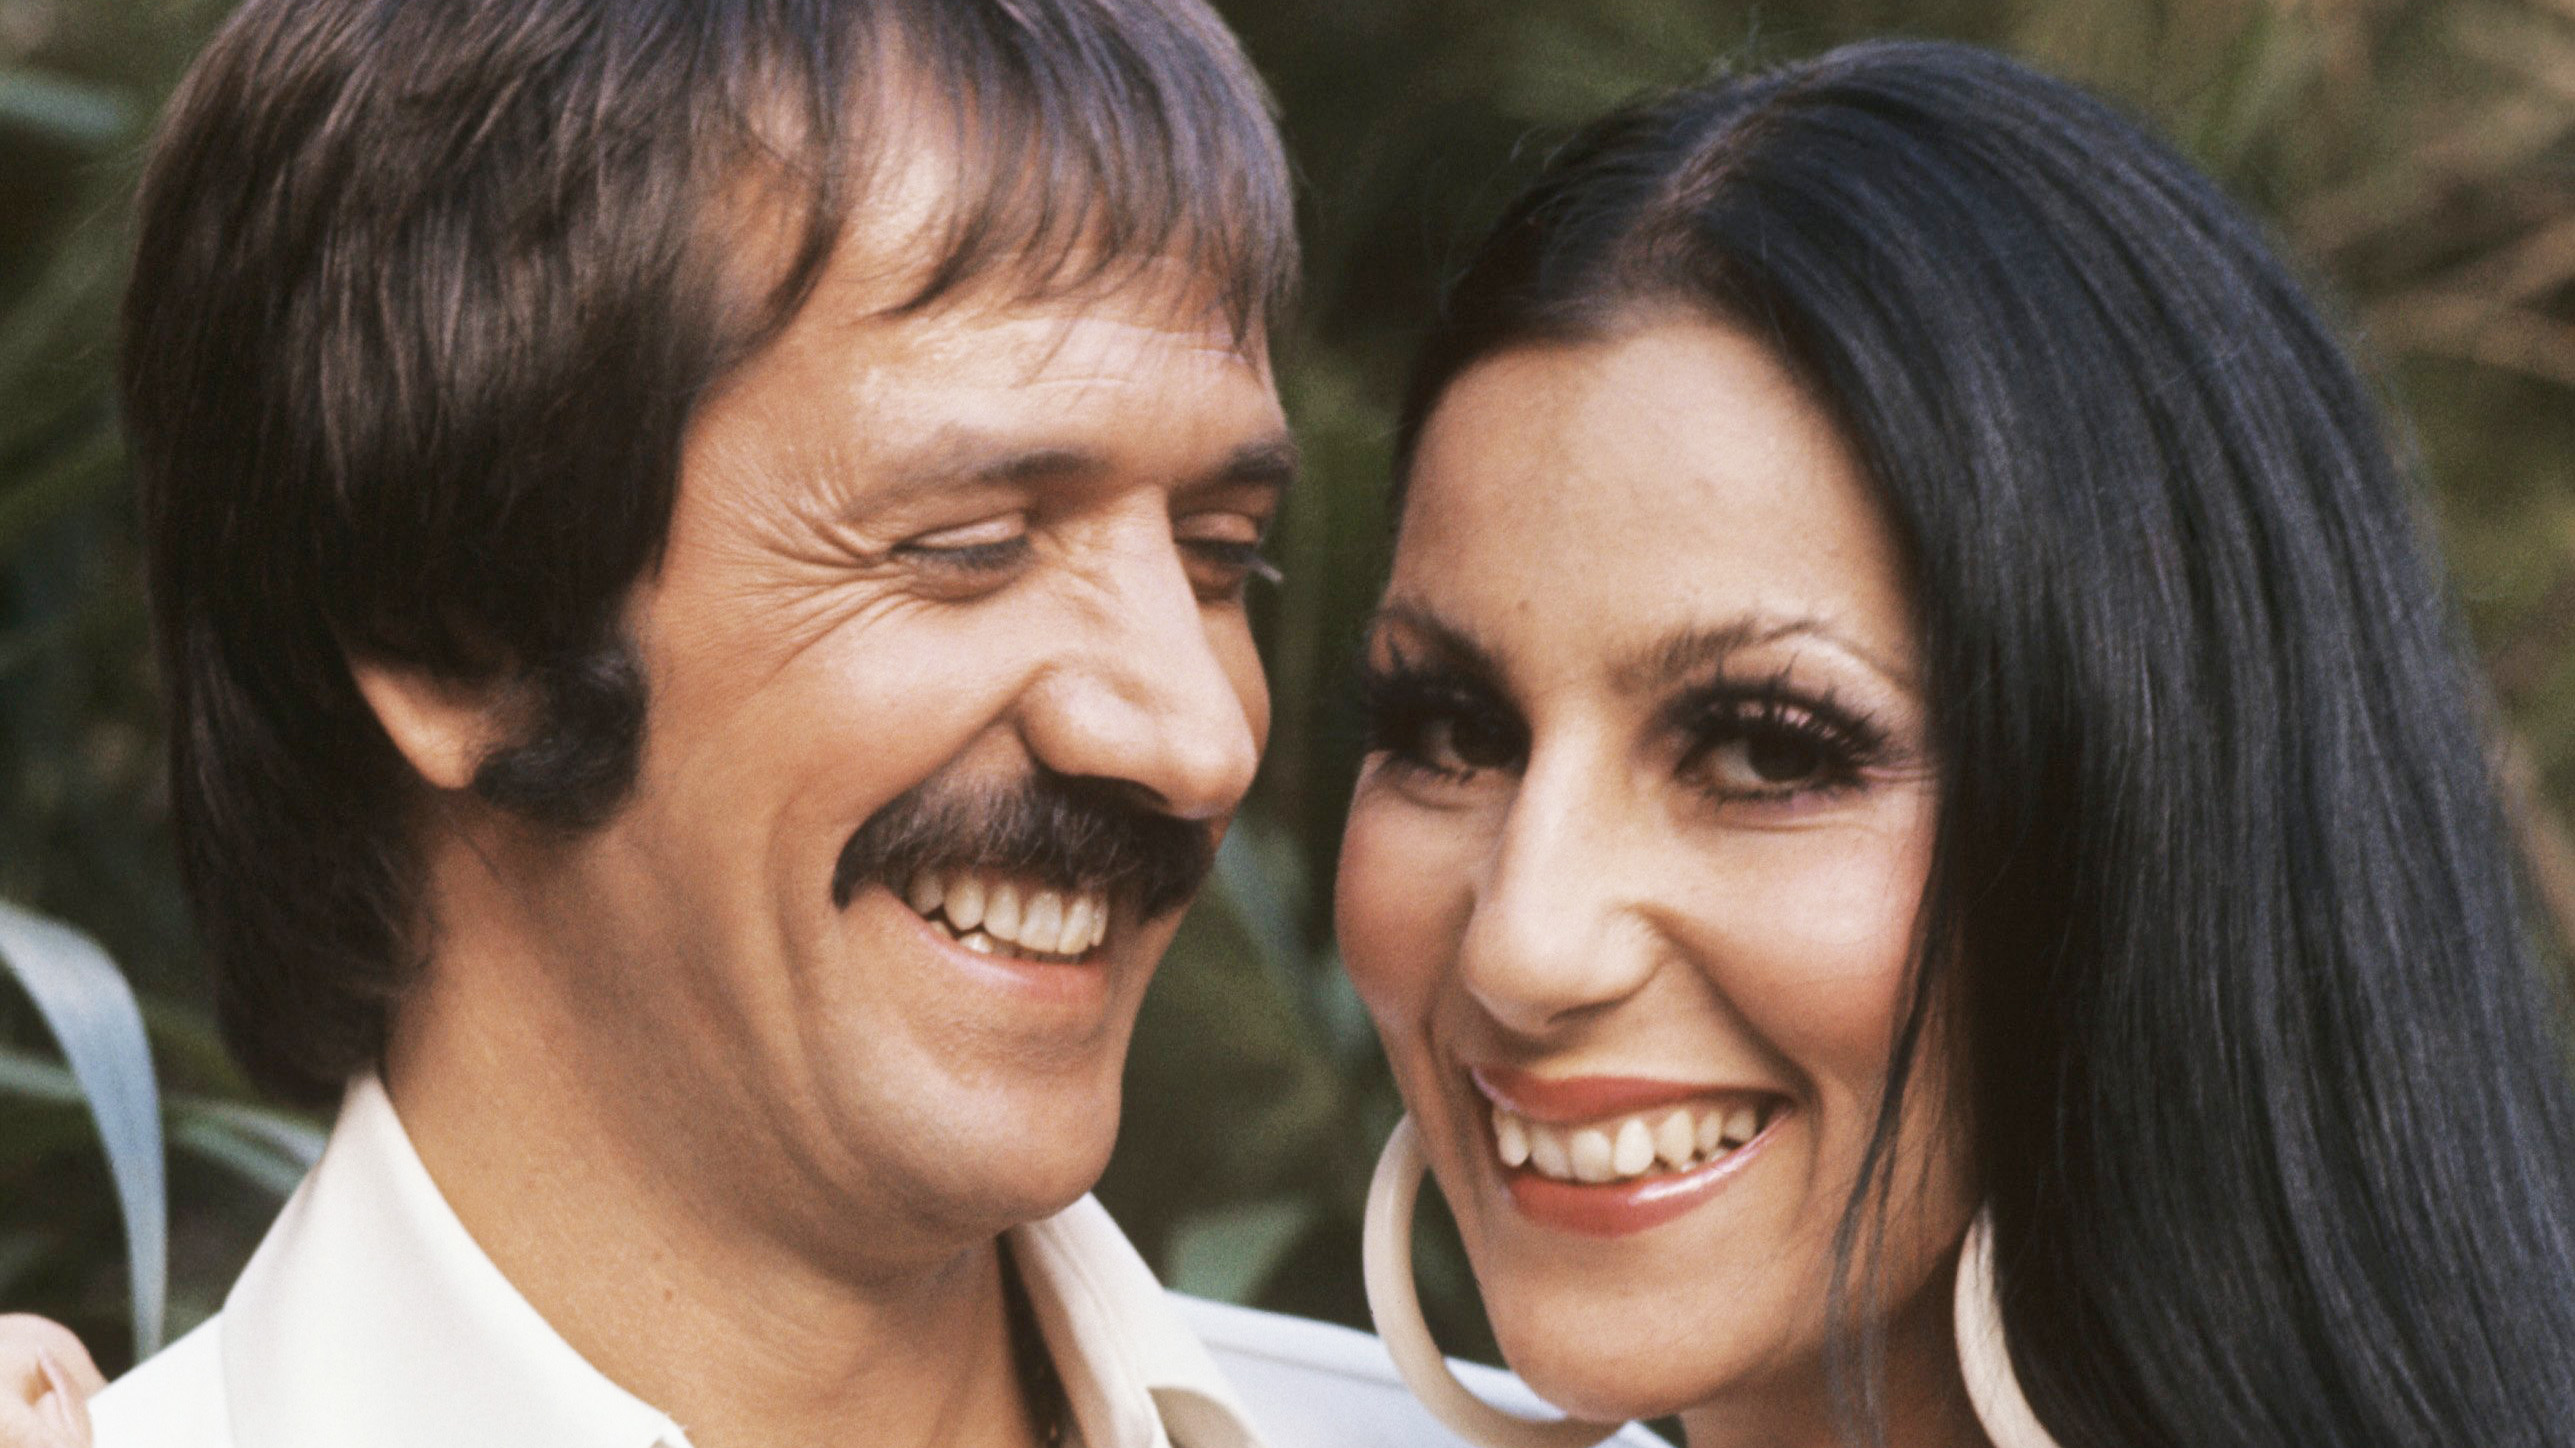 1ae8fc1ed67 Sonny and Cher Bought Their Gorgeous Bel Air House for 250K in the Late  '60s — See Inside!